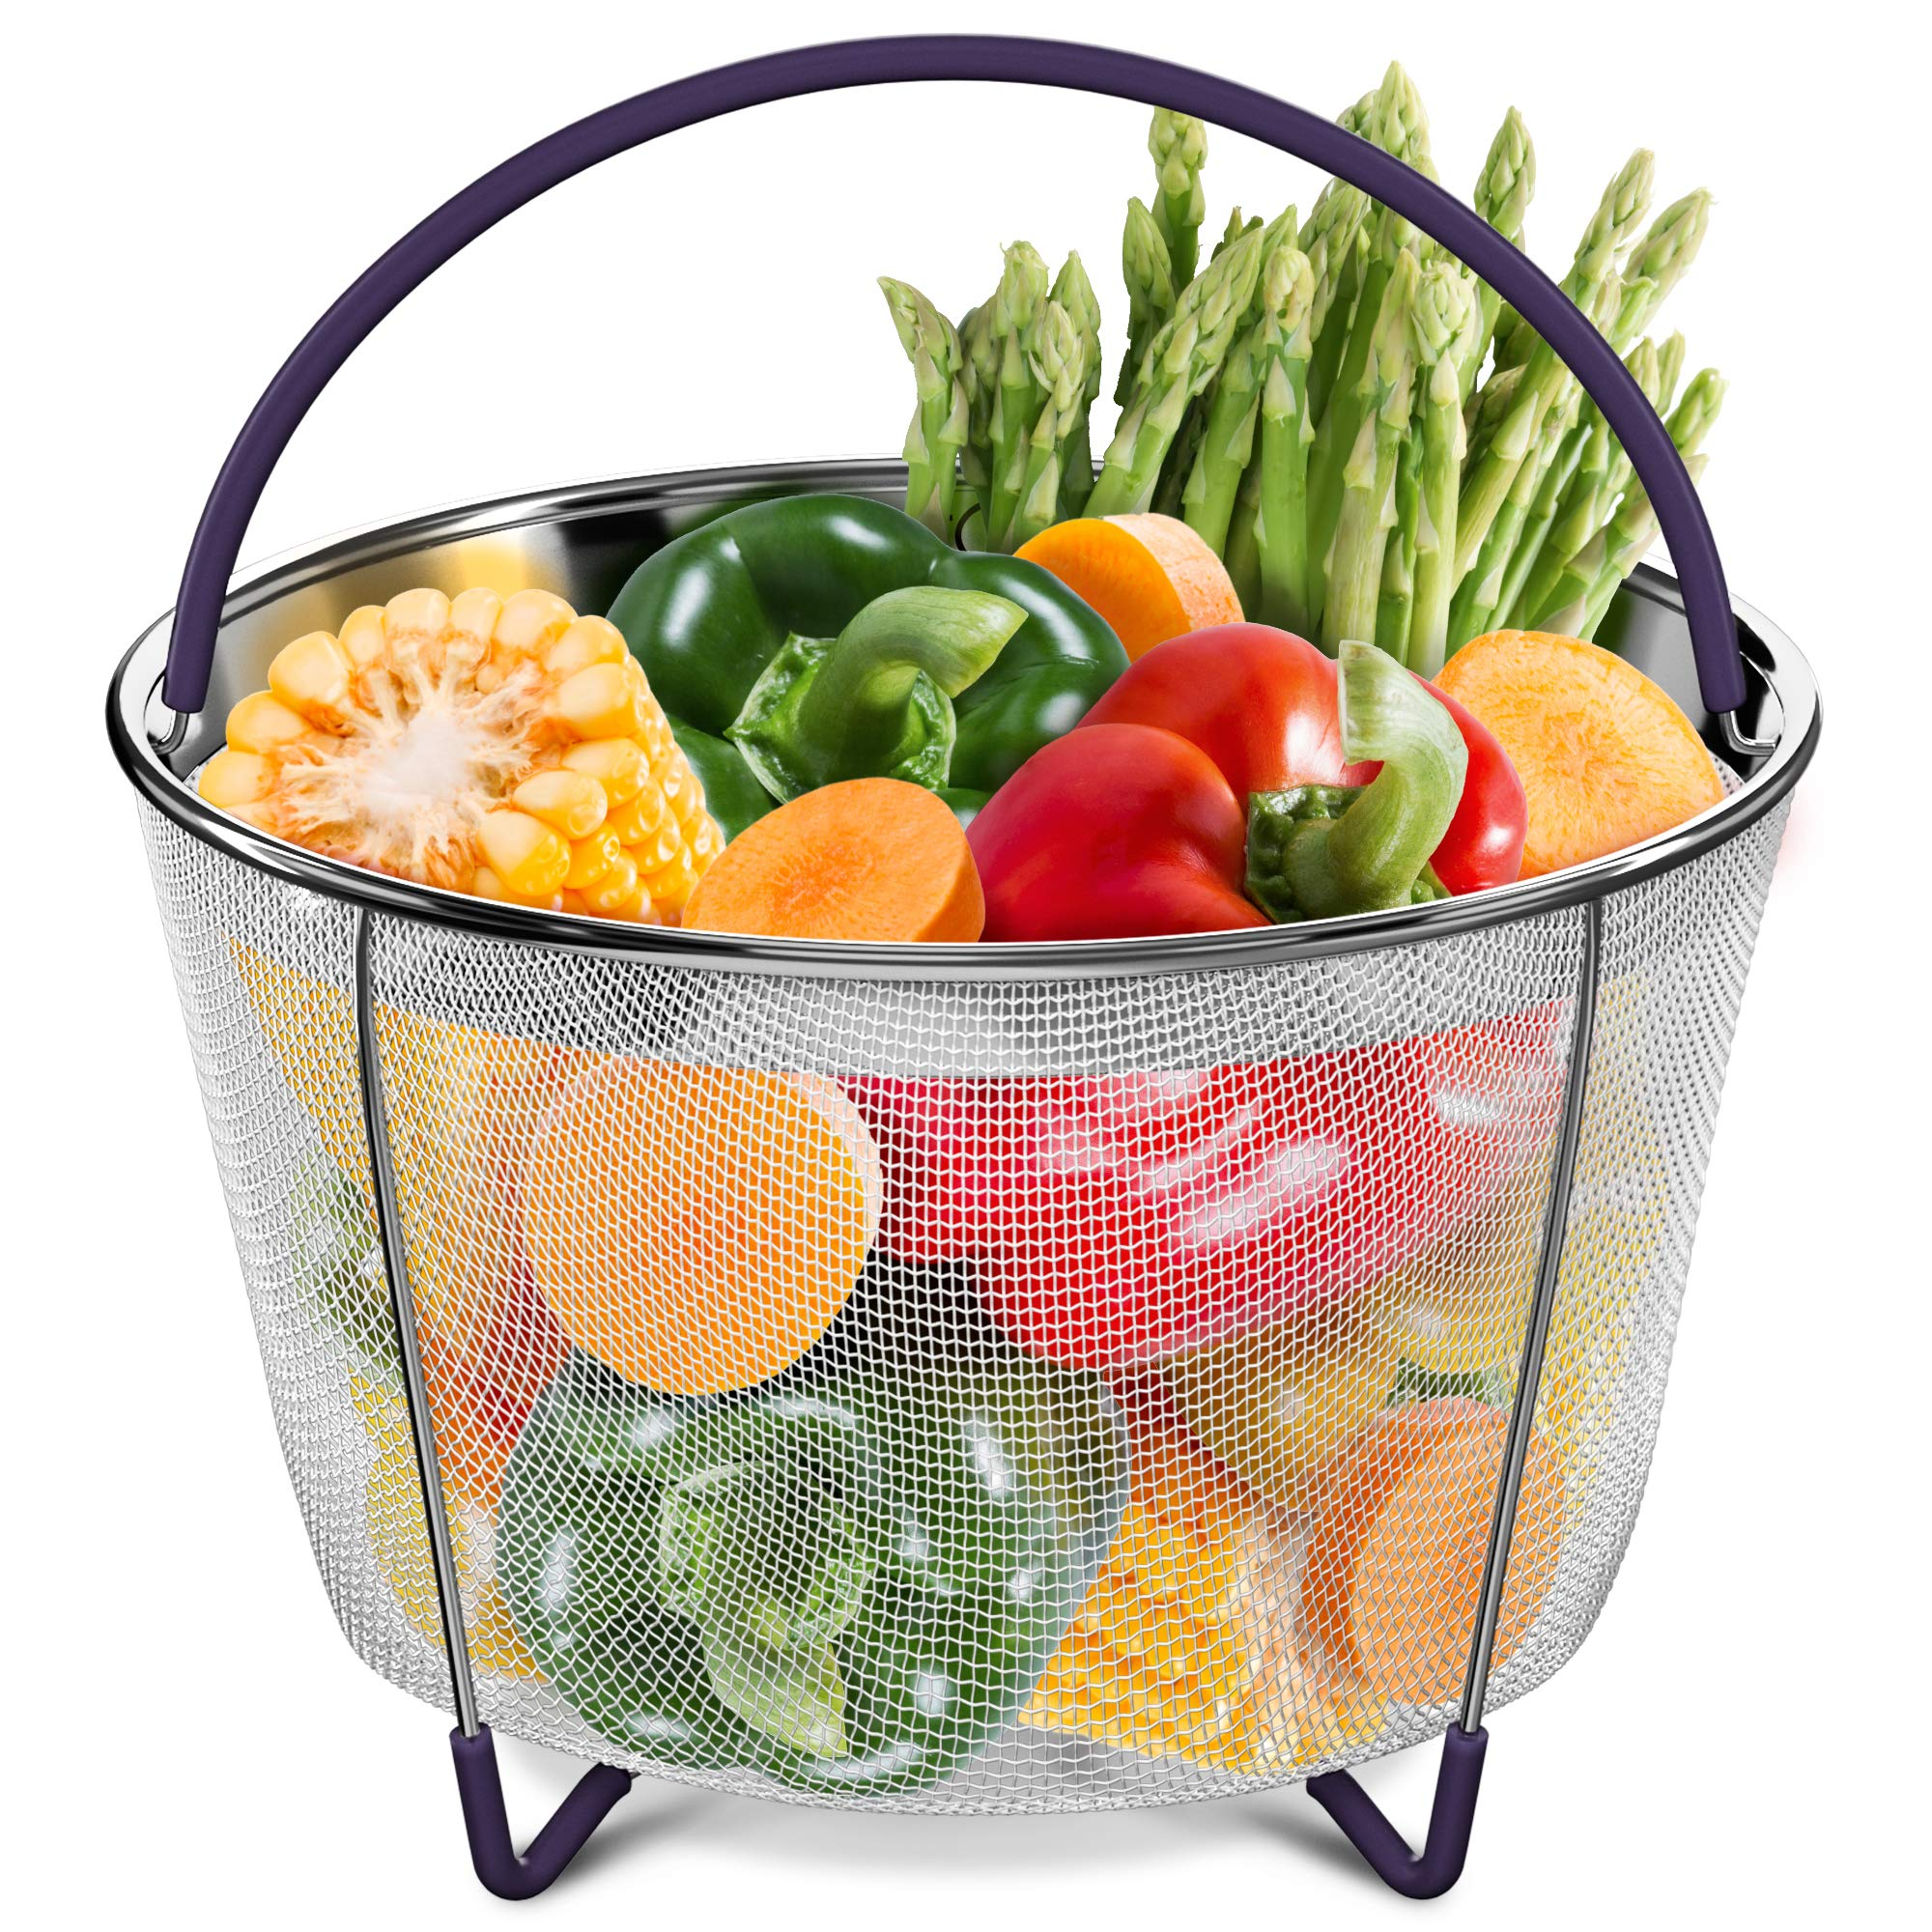 PerfeCome – Steamer Basket 6qt – Instant Pot Accessories With Silicone Scratchproof & Nonslip Feet & Handles In 5 Colors – Food Grade Rustproof Veggie Steamer – Durable Pressure Cooker Steaming Rack